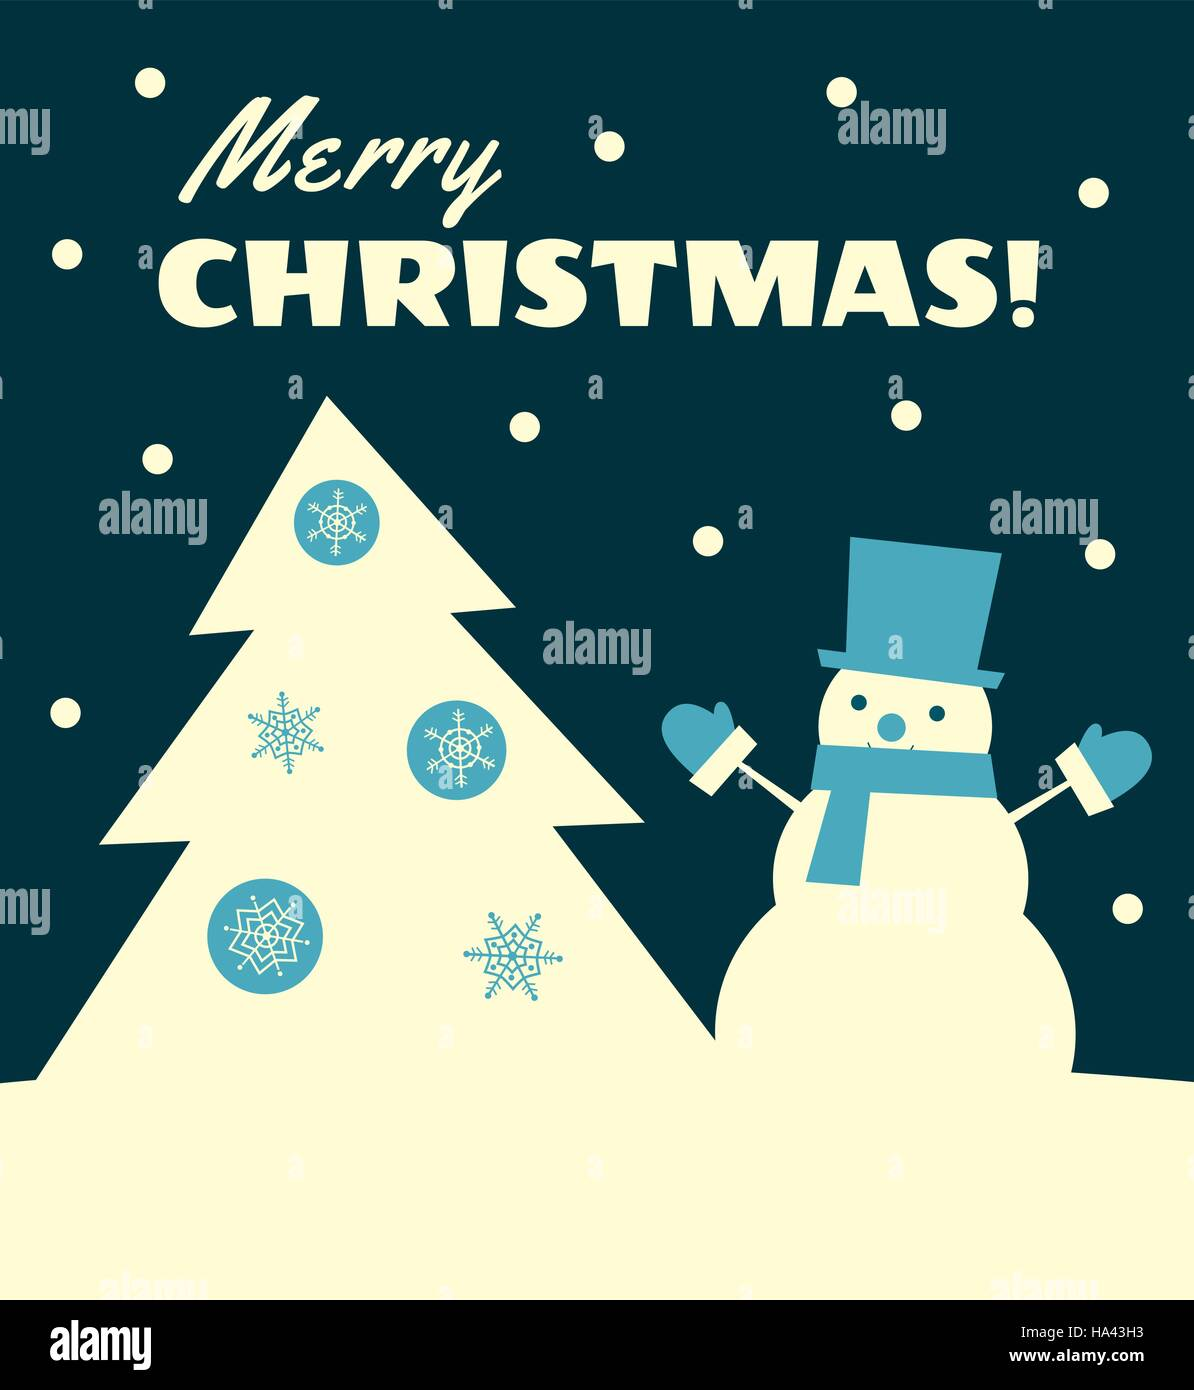 Vector illustration. Retro styled greeting card with a snowman in a top hat standing near a Christmas tree. Dark - Stock Vector